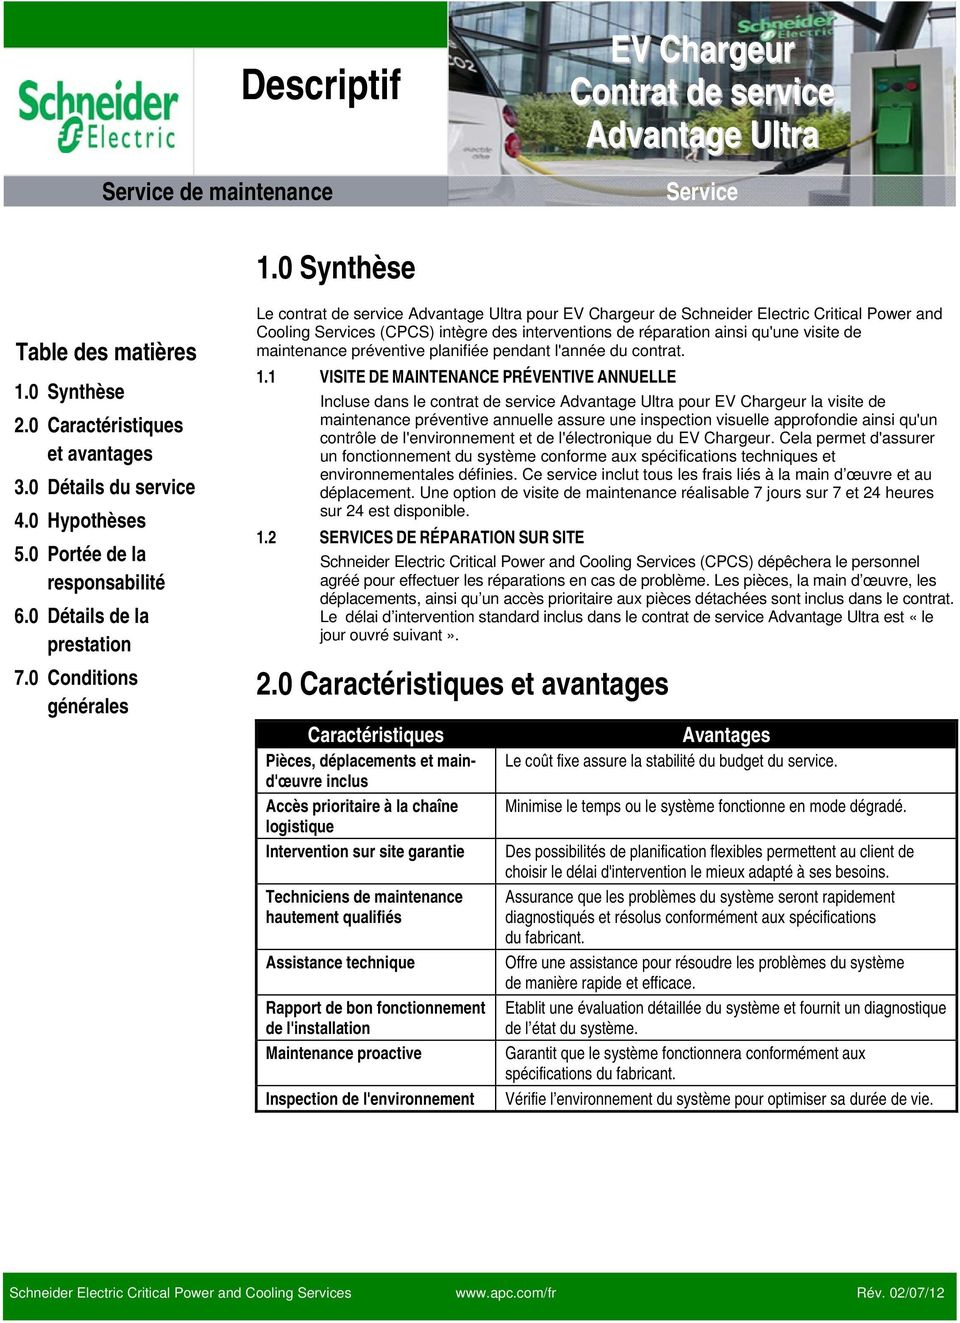 0 Conditions générales Le contrat de service Advantage Ultra pour EV Chargeur de Schneider Electric Critical Power and Cooling Services (CPCS) intègre des interventions de réparation ainsi qu'une